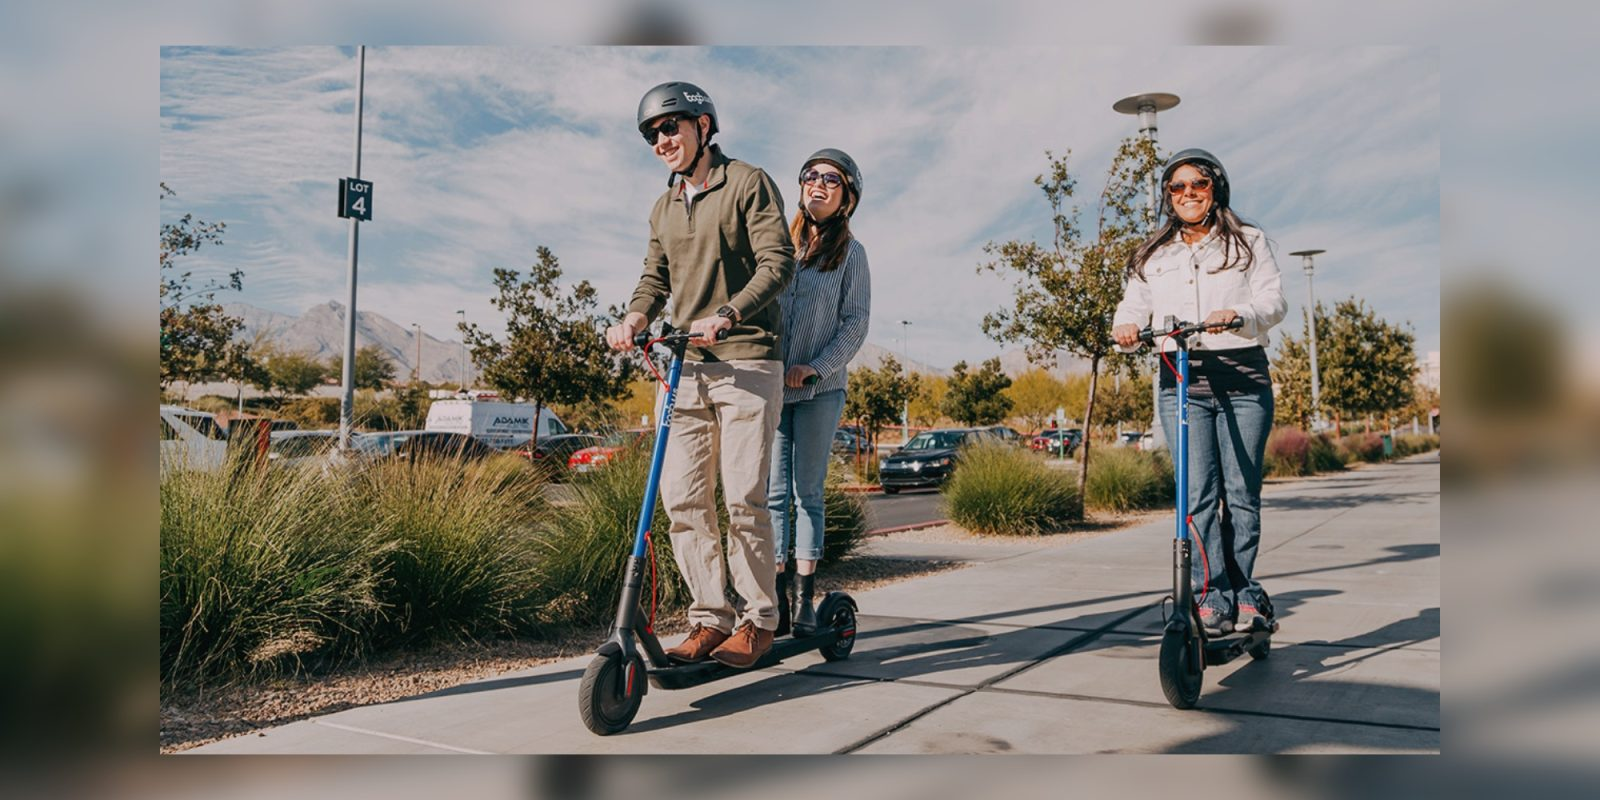 BOGO's dangerous looking two-person electric scooter coming soon